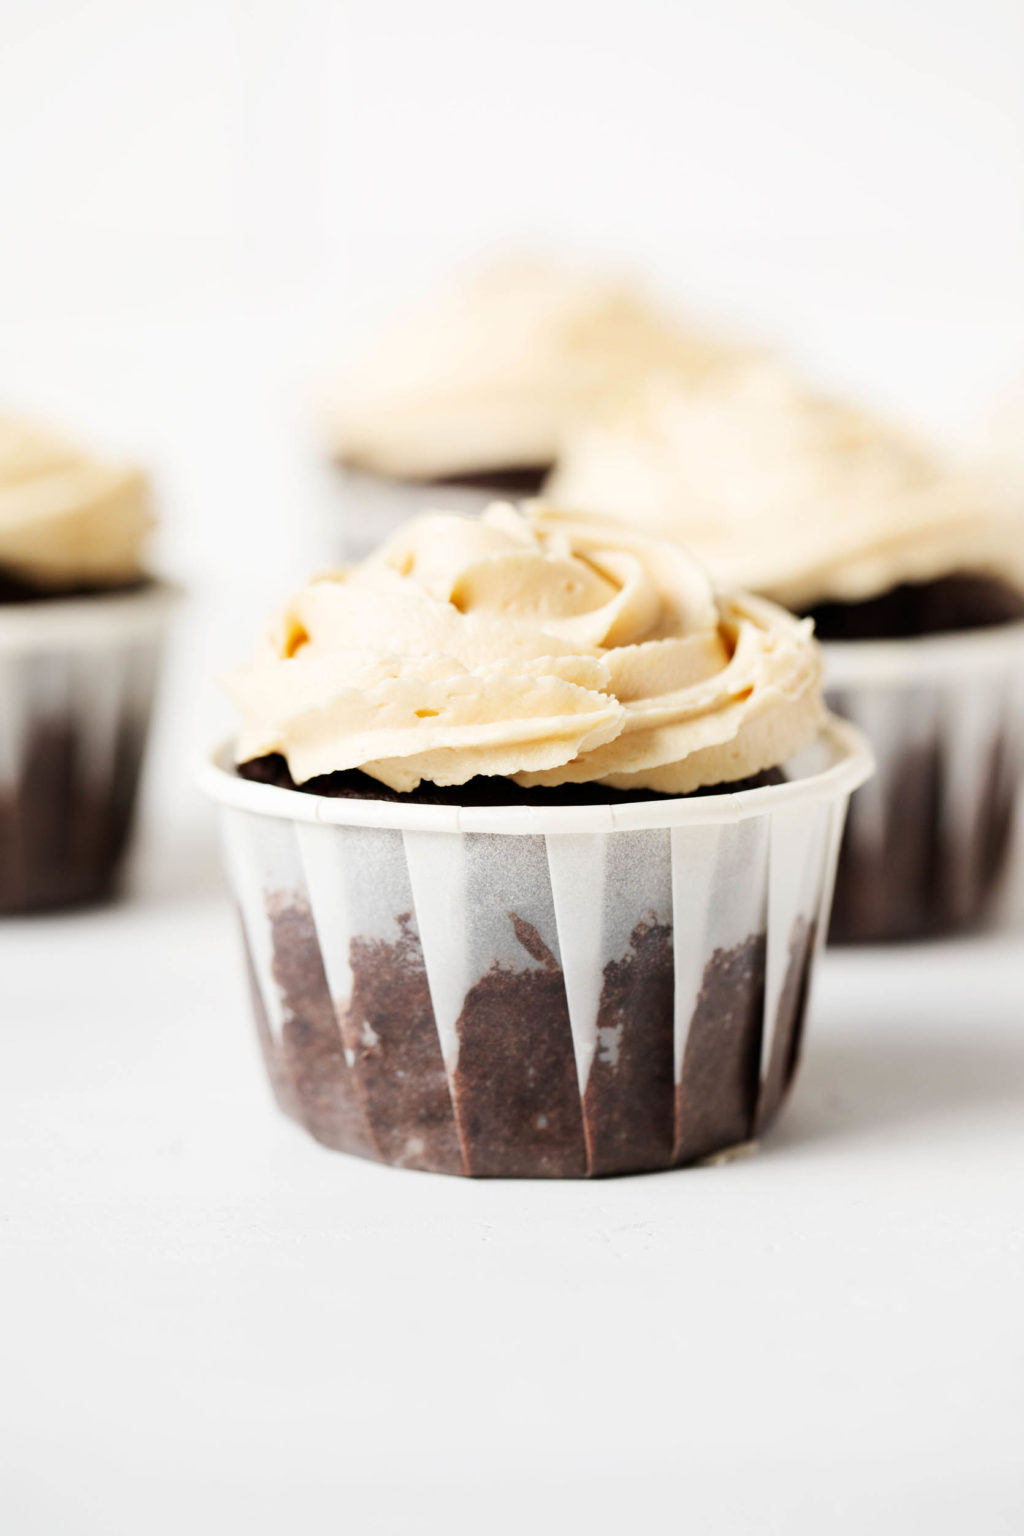 A sideways photograph of vegan chocolate peanut butter cupcakes, which have been piped with a creamy frosting.